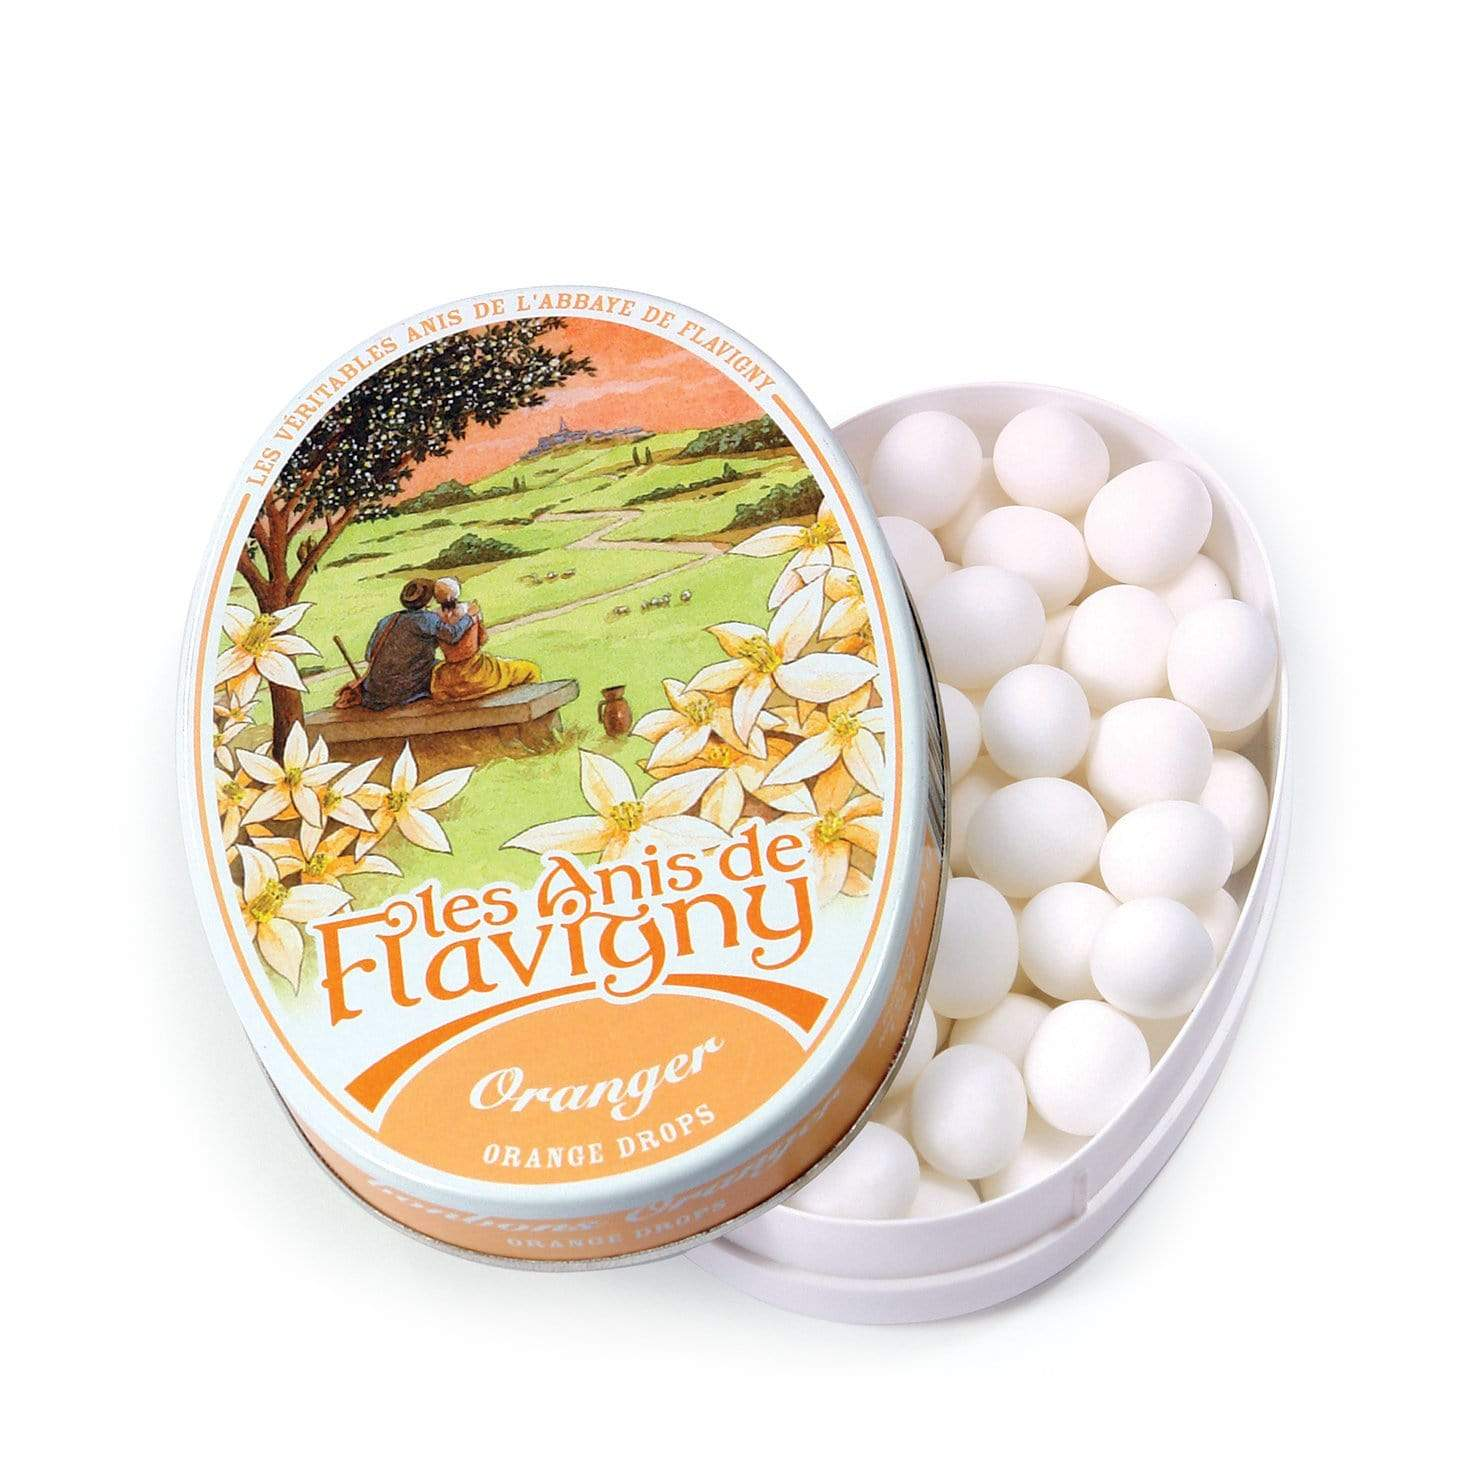 Anis de Flavigny Orange Pastilles